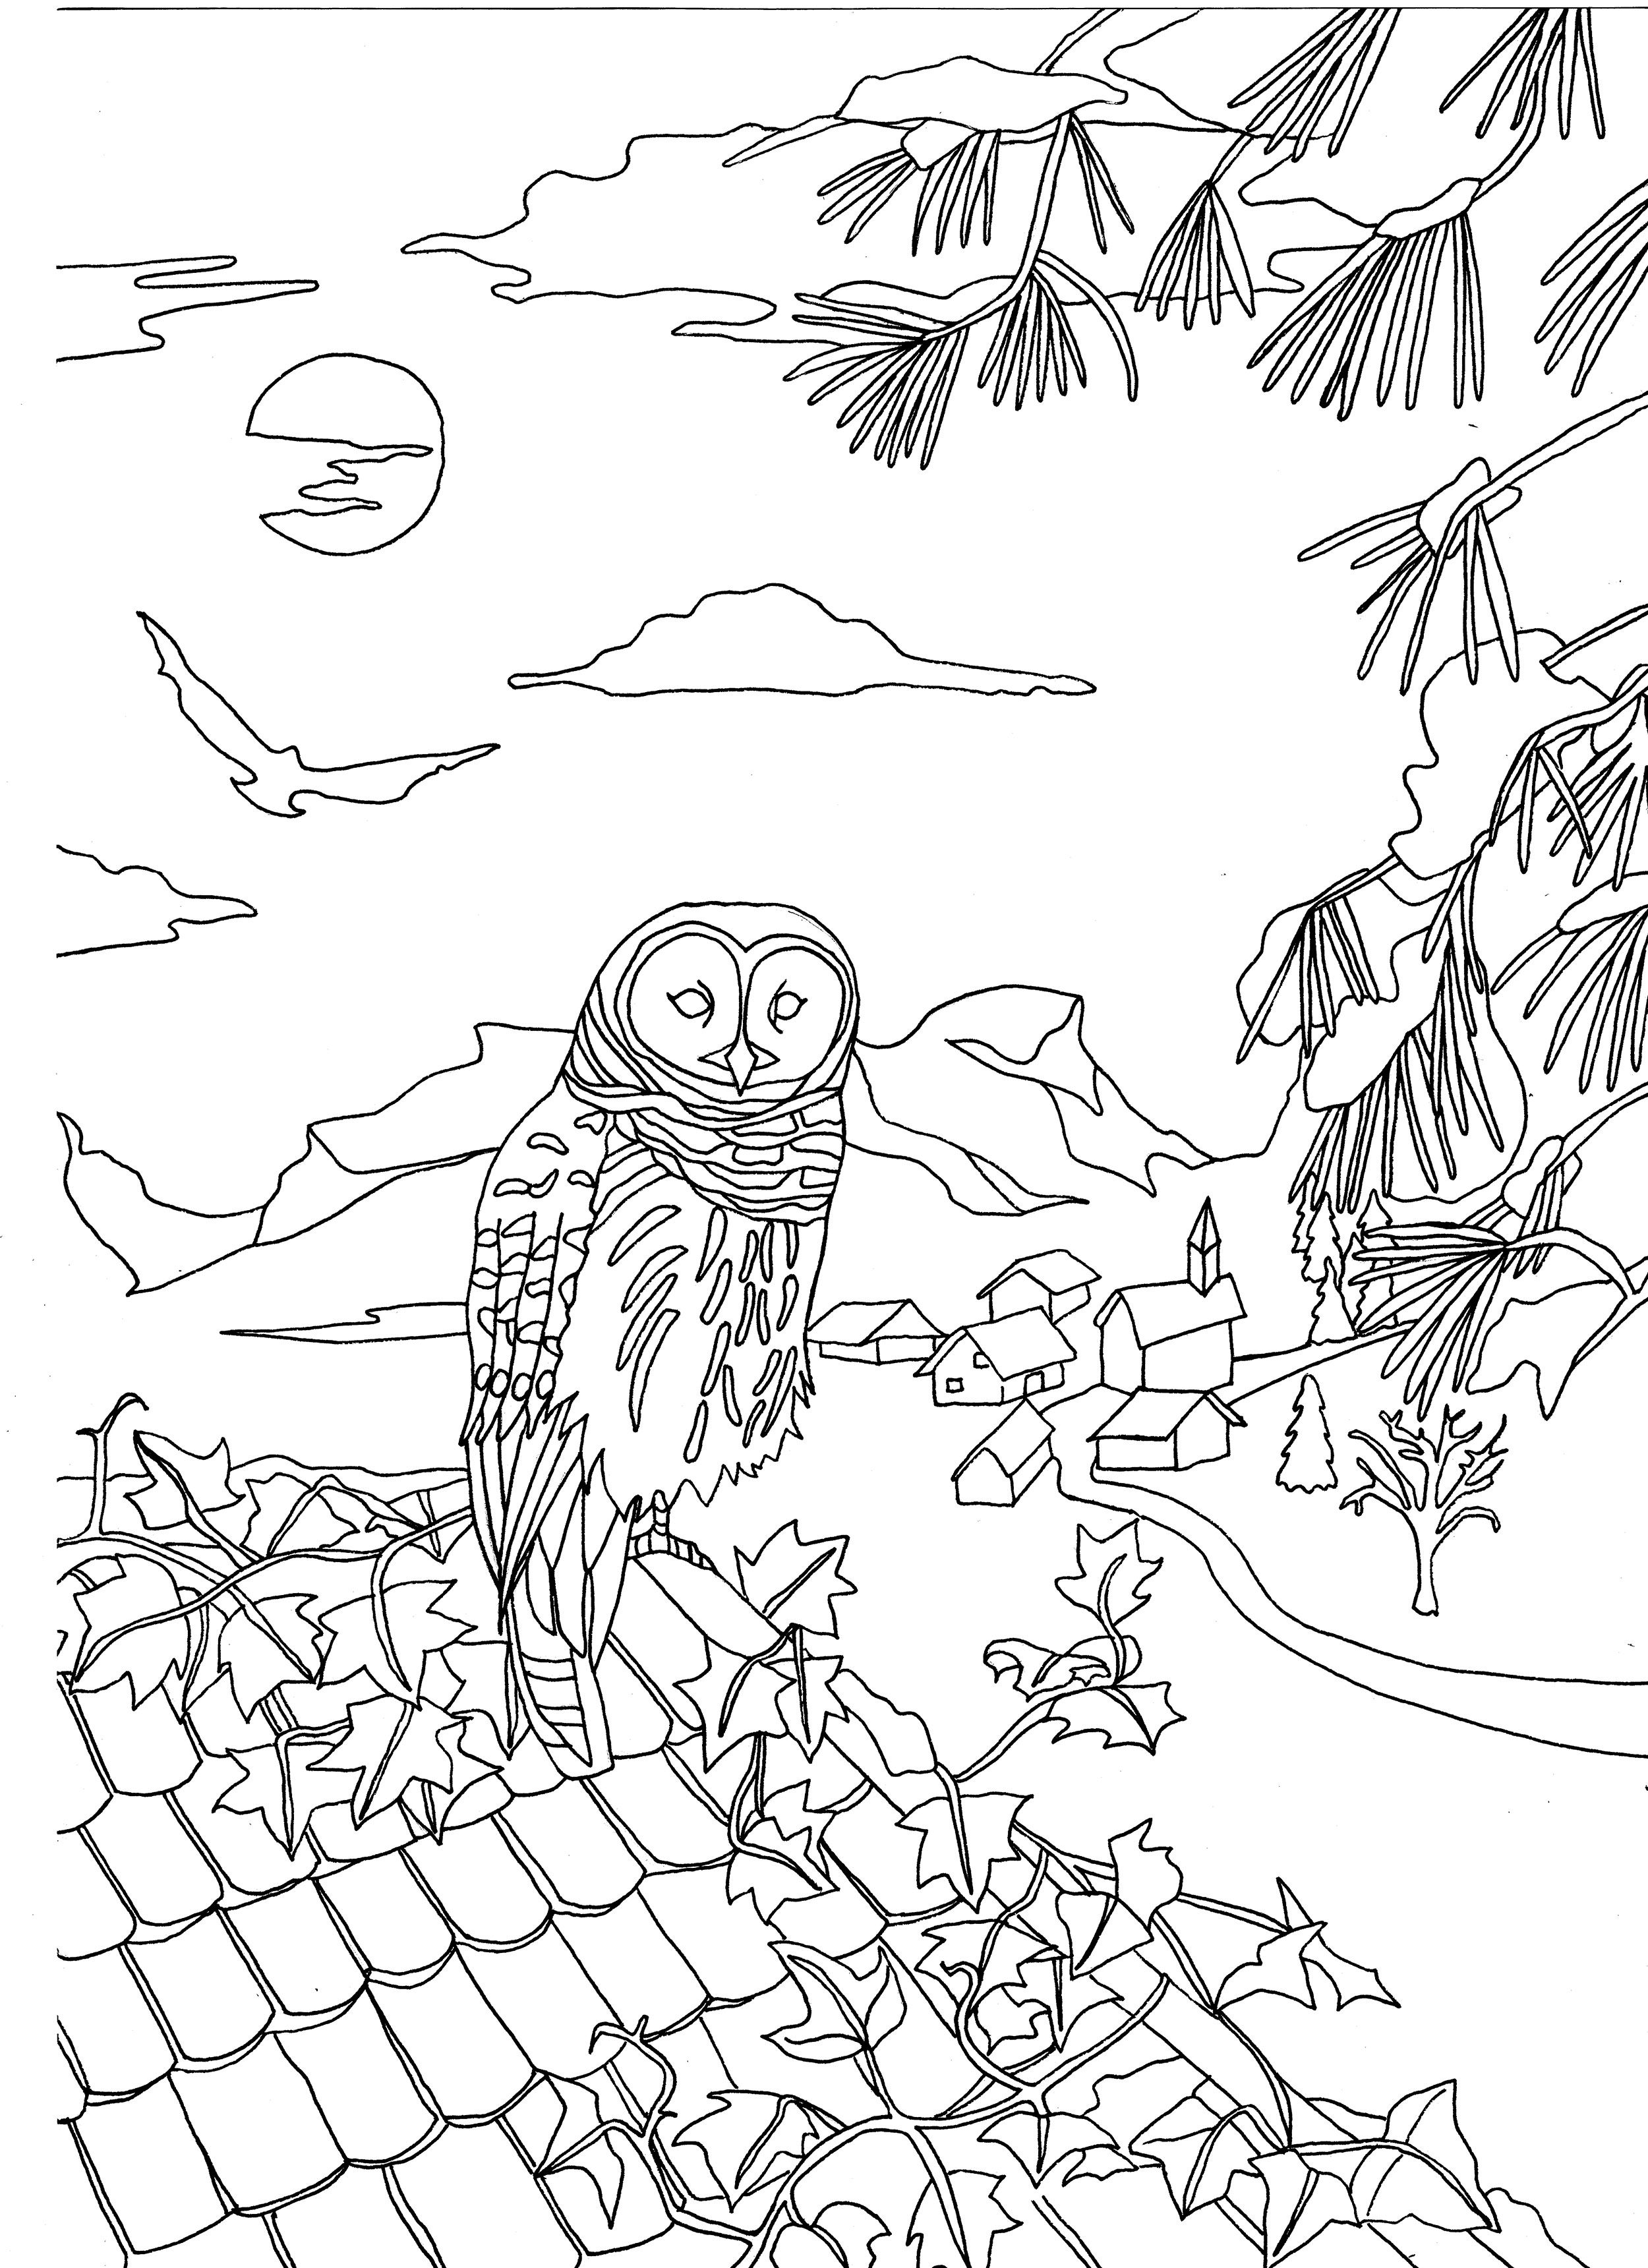 Adulting coloring pages ~ Free coloring page coloring-adult-owl-on-a-roof-by-marion ...